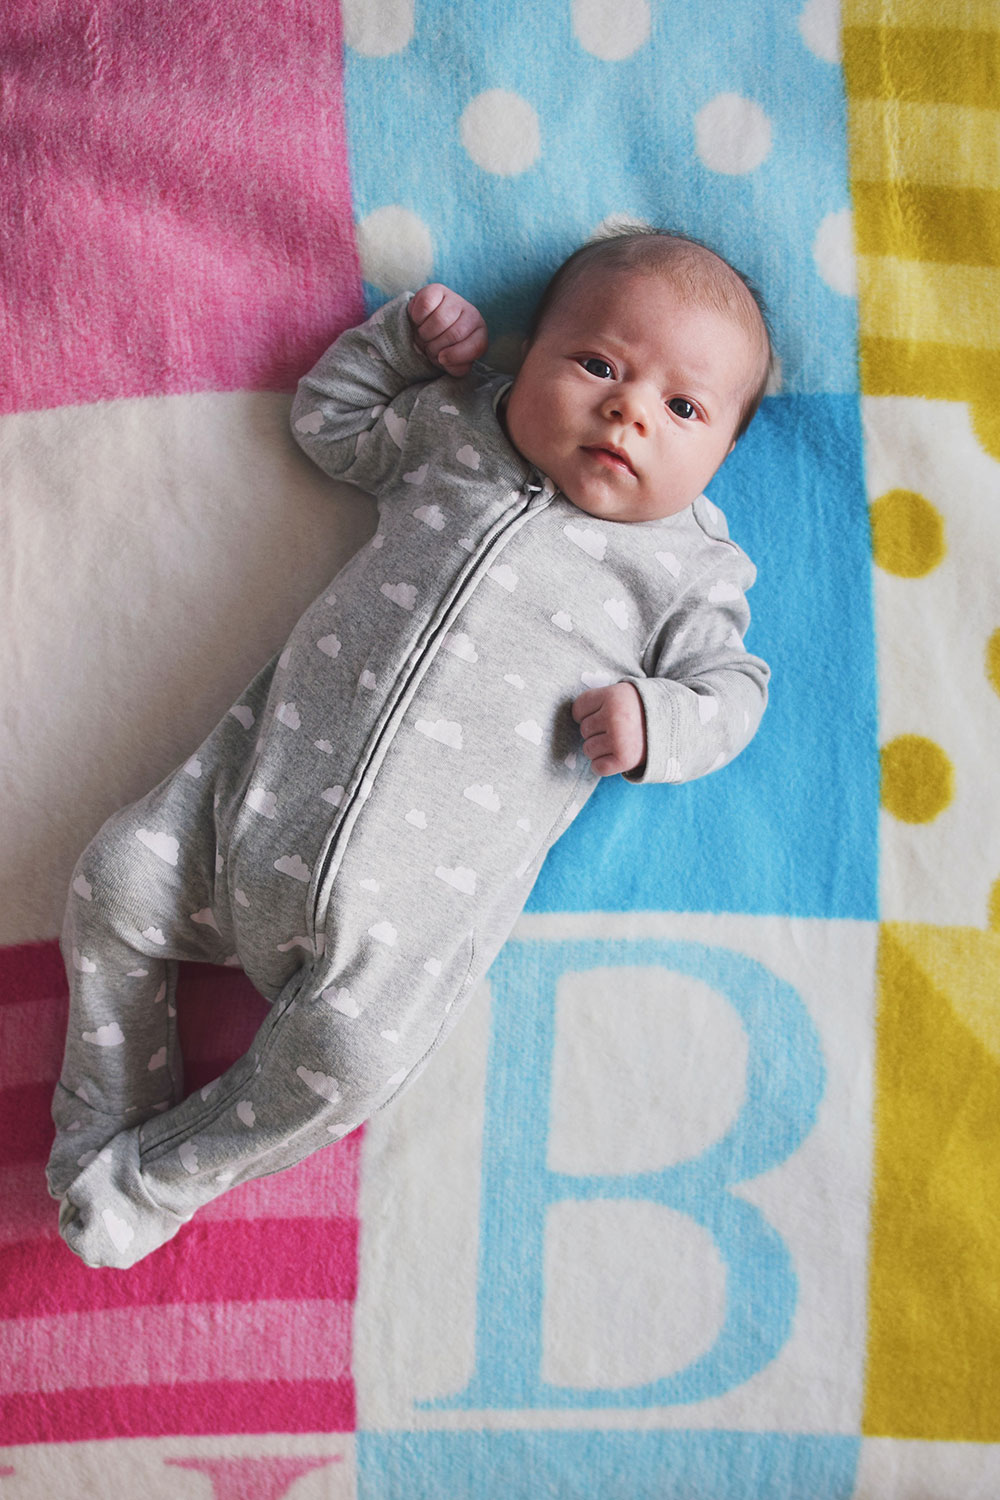 Baby Jesse Blue at 2 months old - Newborn smiling whilst laying on multicoloured alphabet blanket